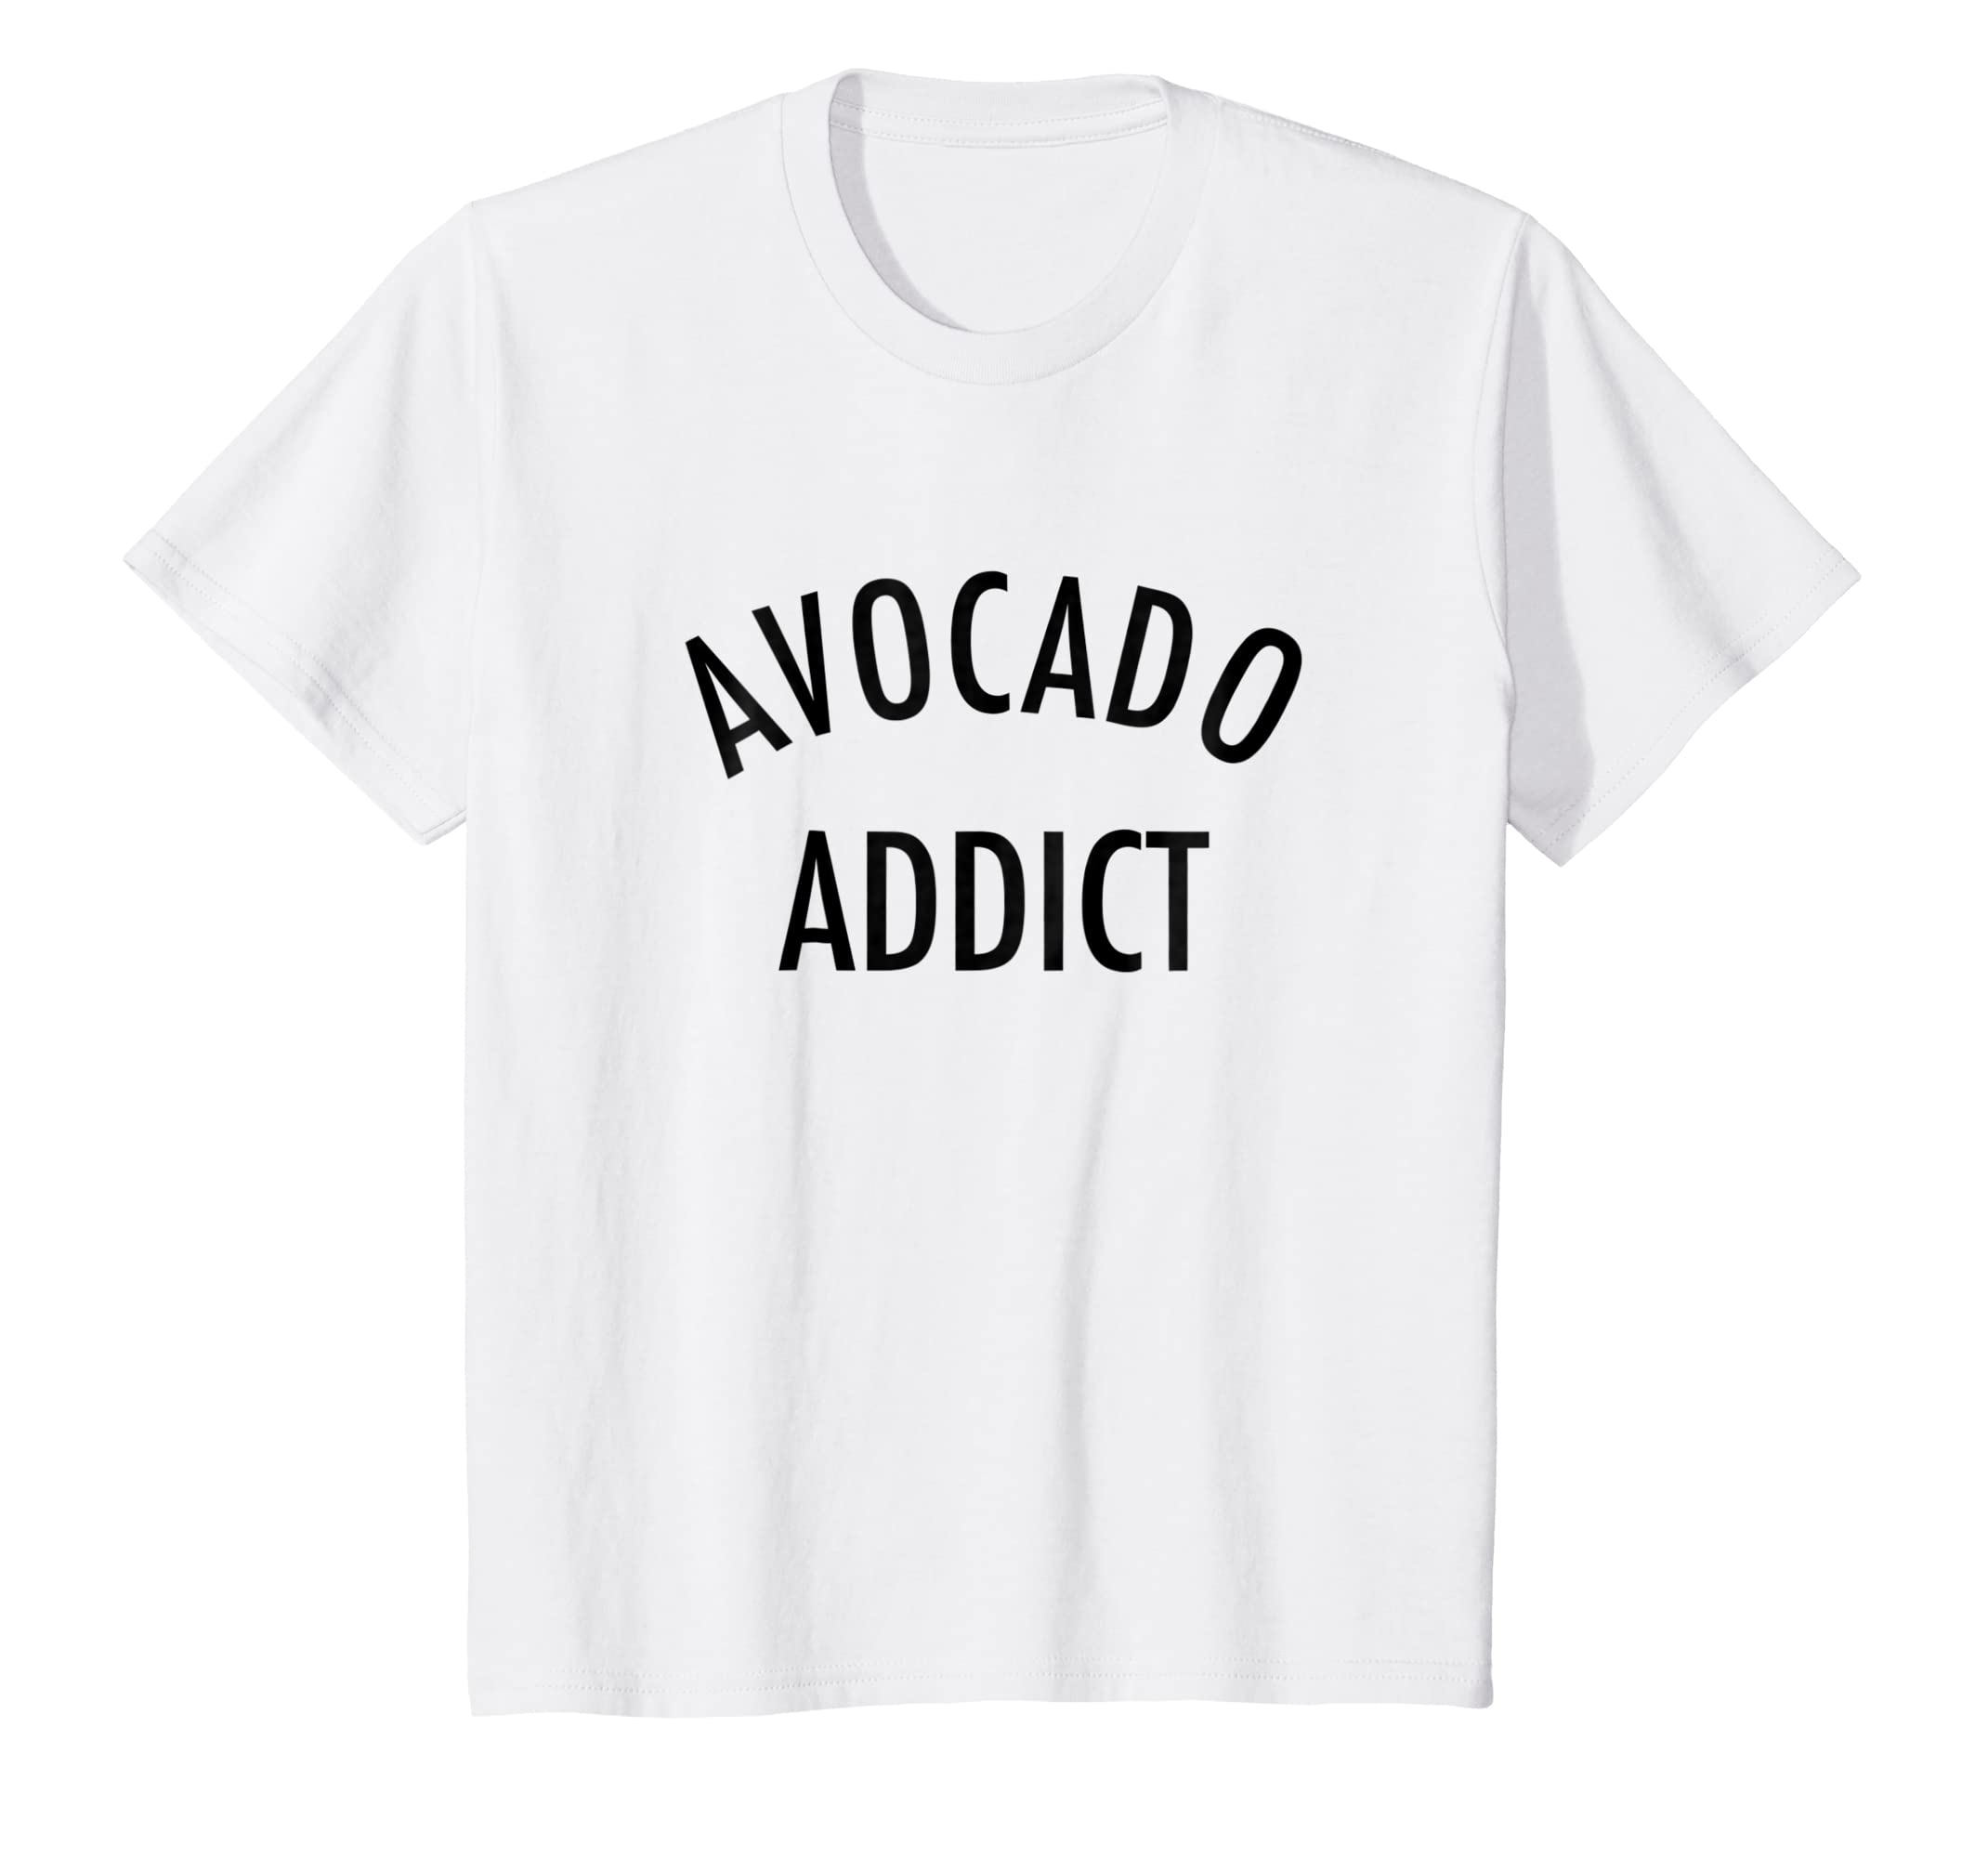 0b9f269be Amazon.com  Avocado Addict - Funny Avo Loving Foodie Slogan T-Shirt   Clothing